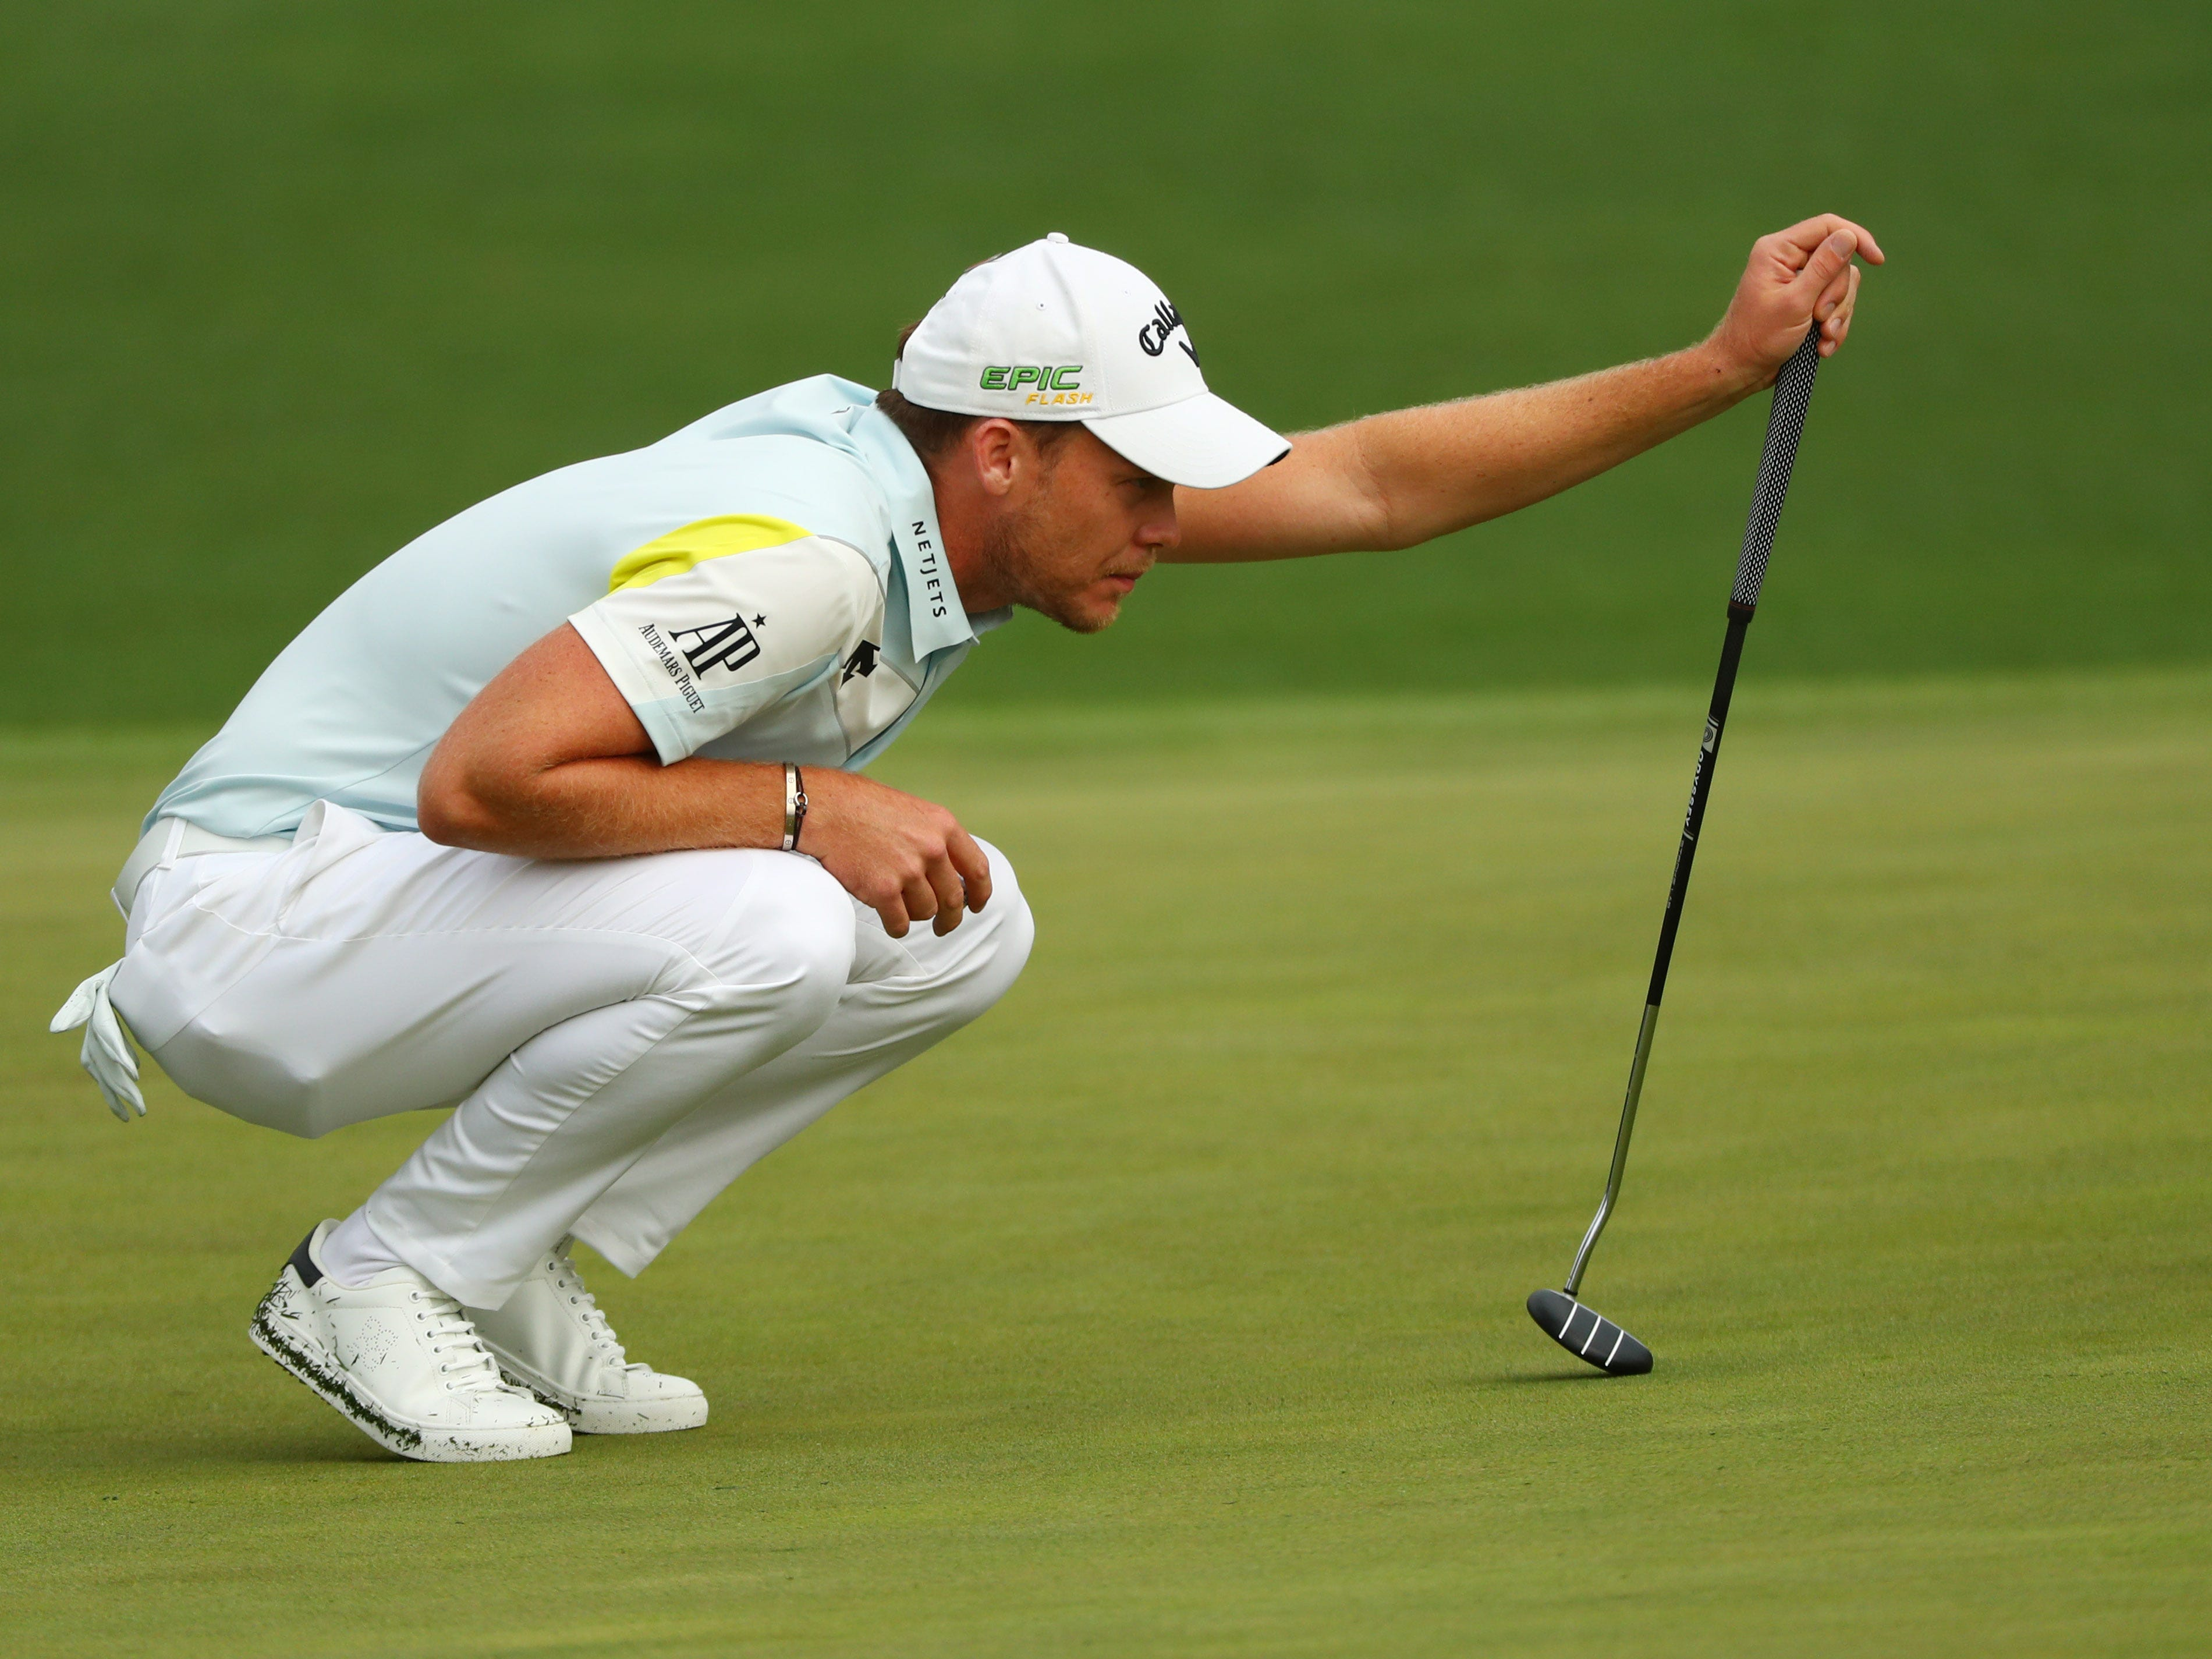 Danny Willett lines up a putt on the second green.